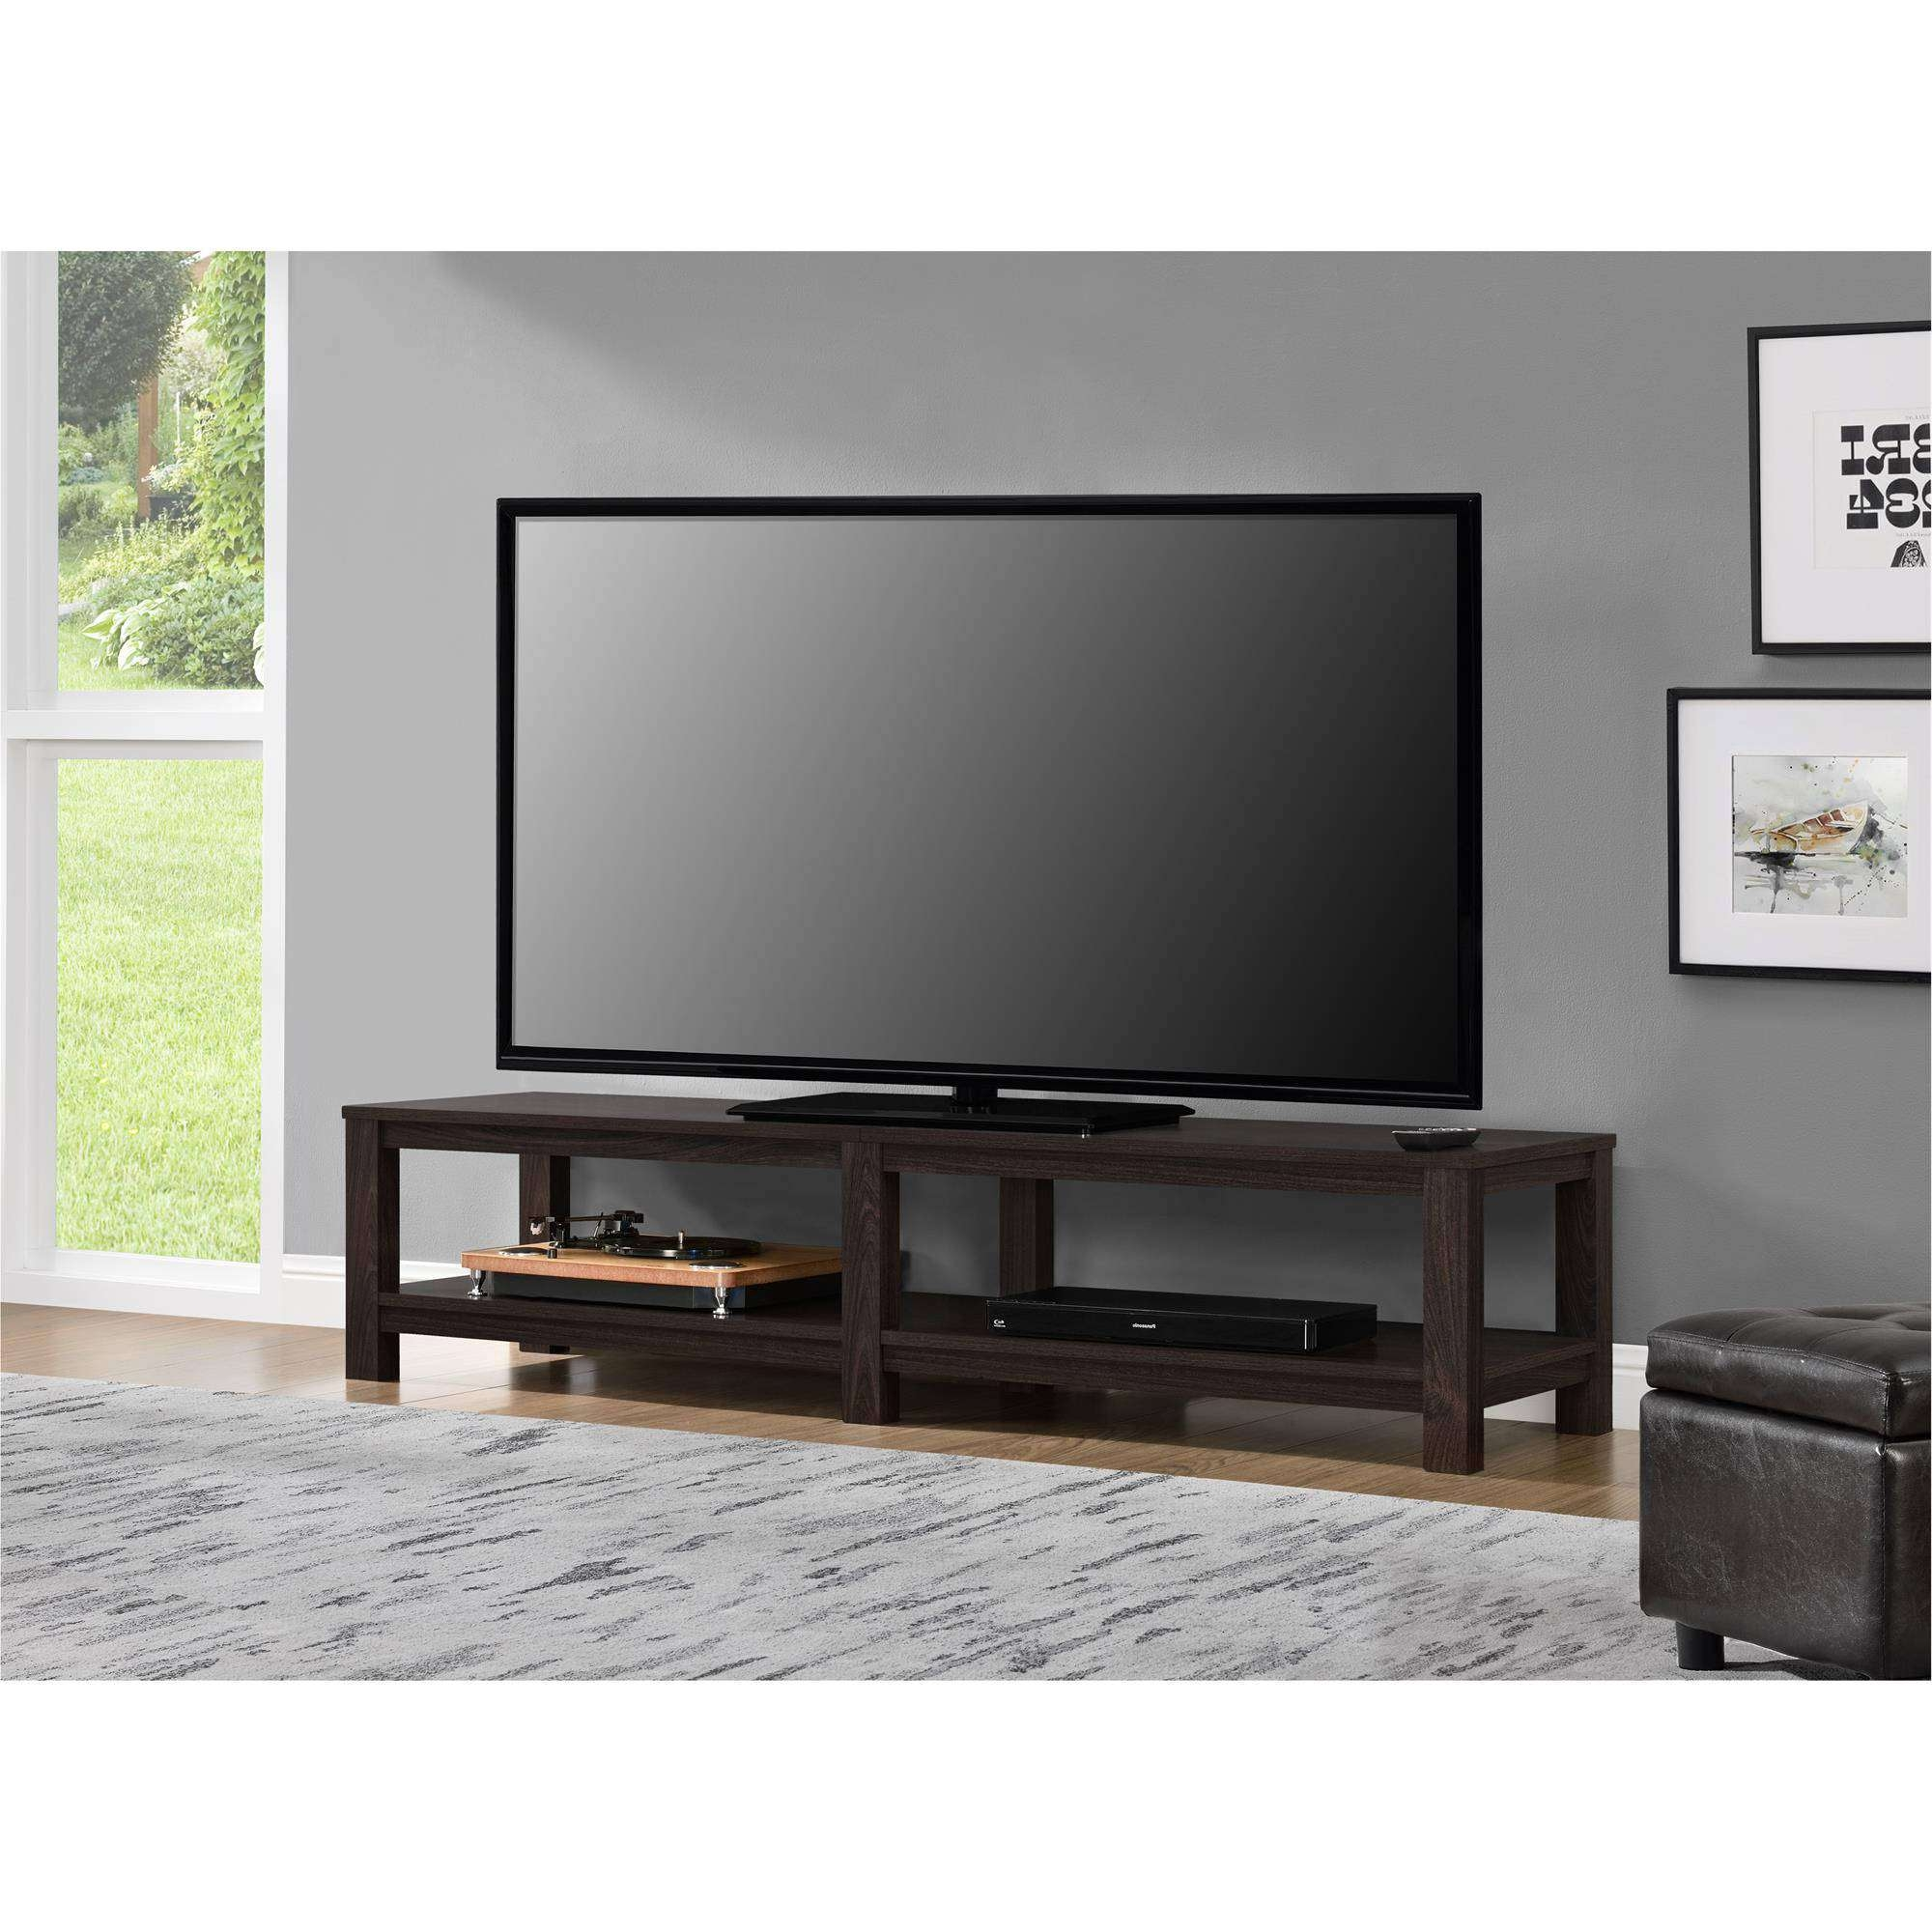 Bedroom Design : Magnificent Television Tables Corner Tv Shelf Low Intended For Low Corner Tv Stands (View 3 of 15)